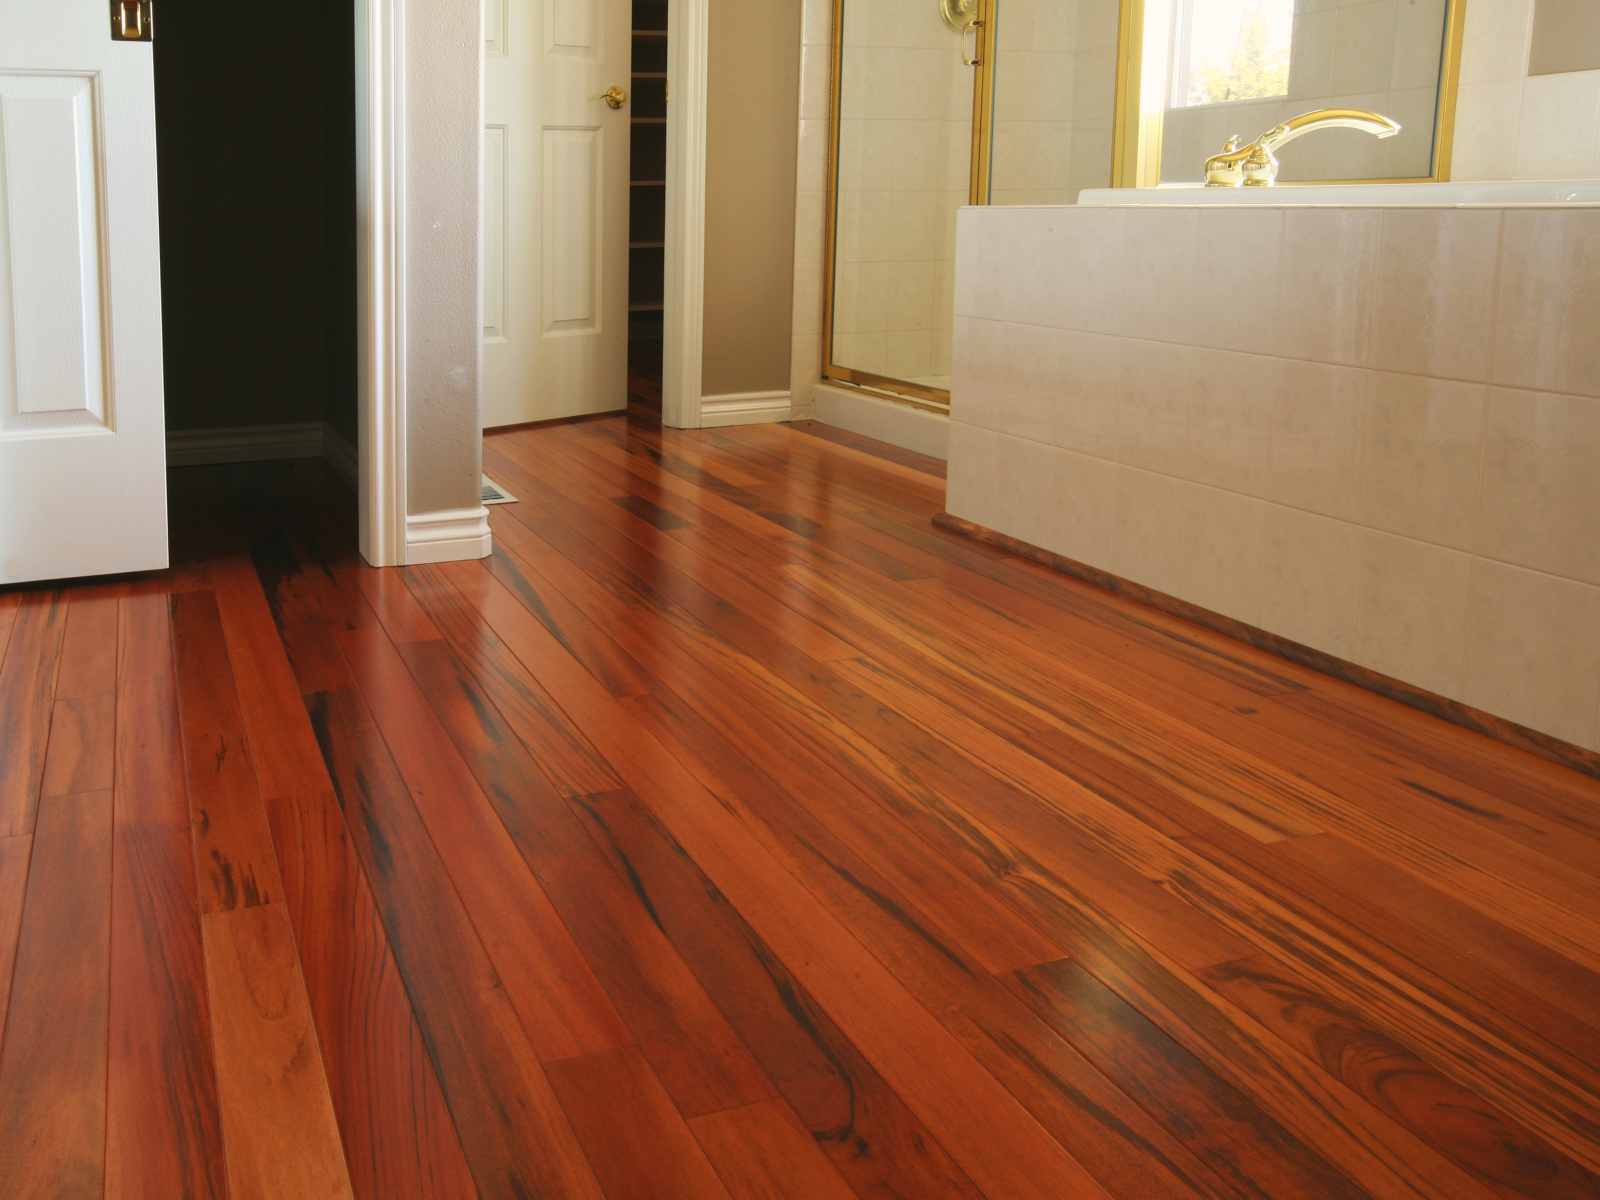 Bamboo flooring eco friendly flooring for your home for Best wood for wood floors